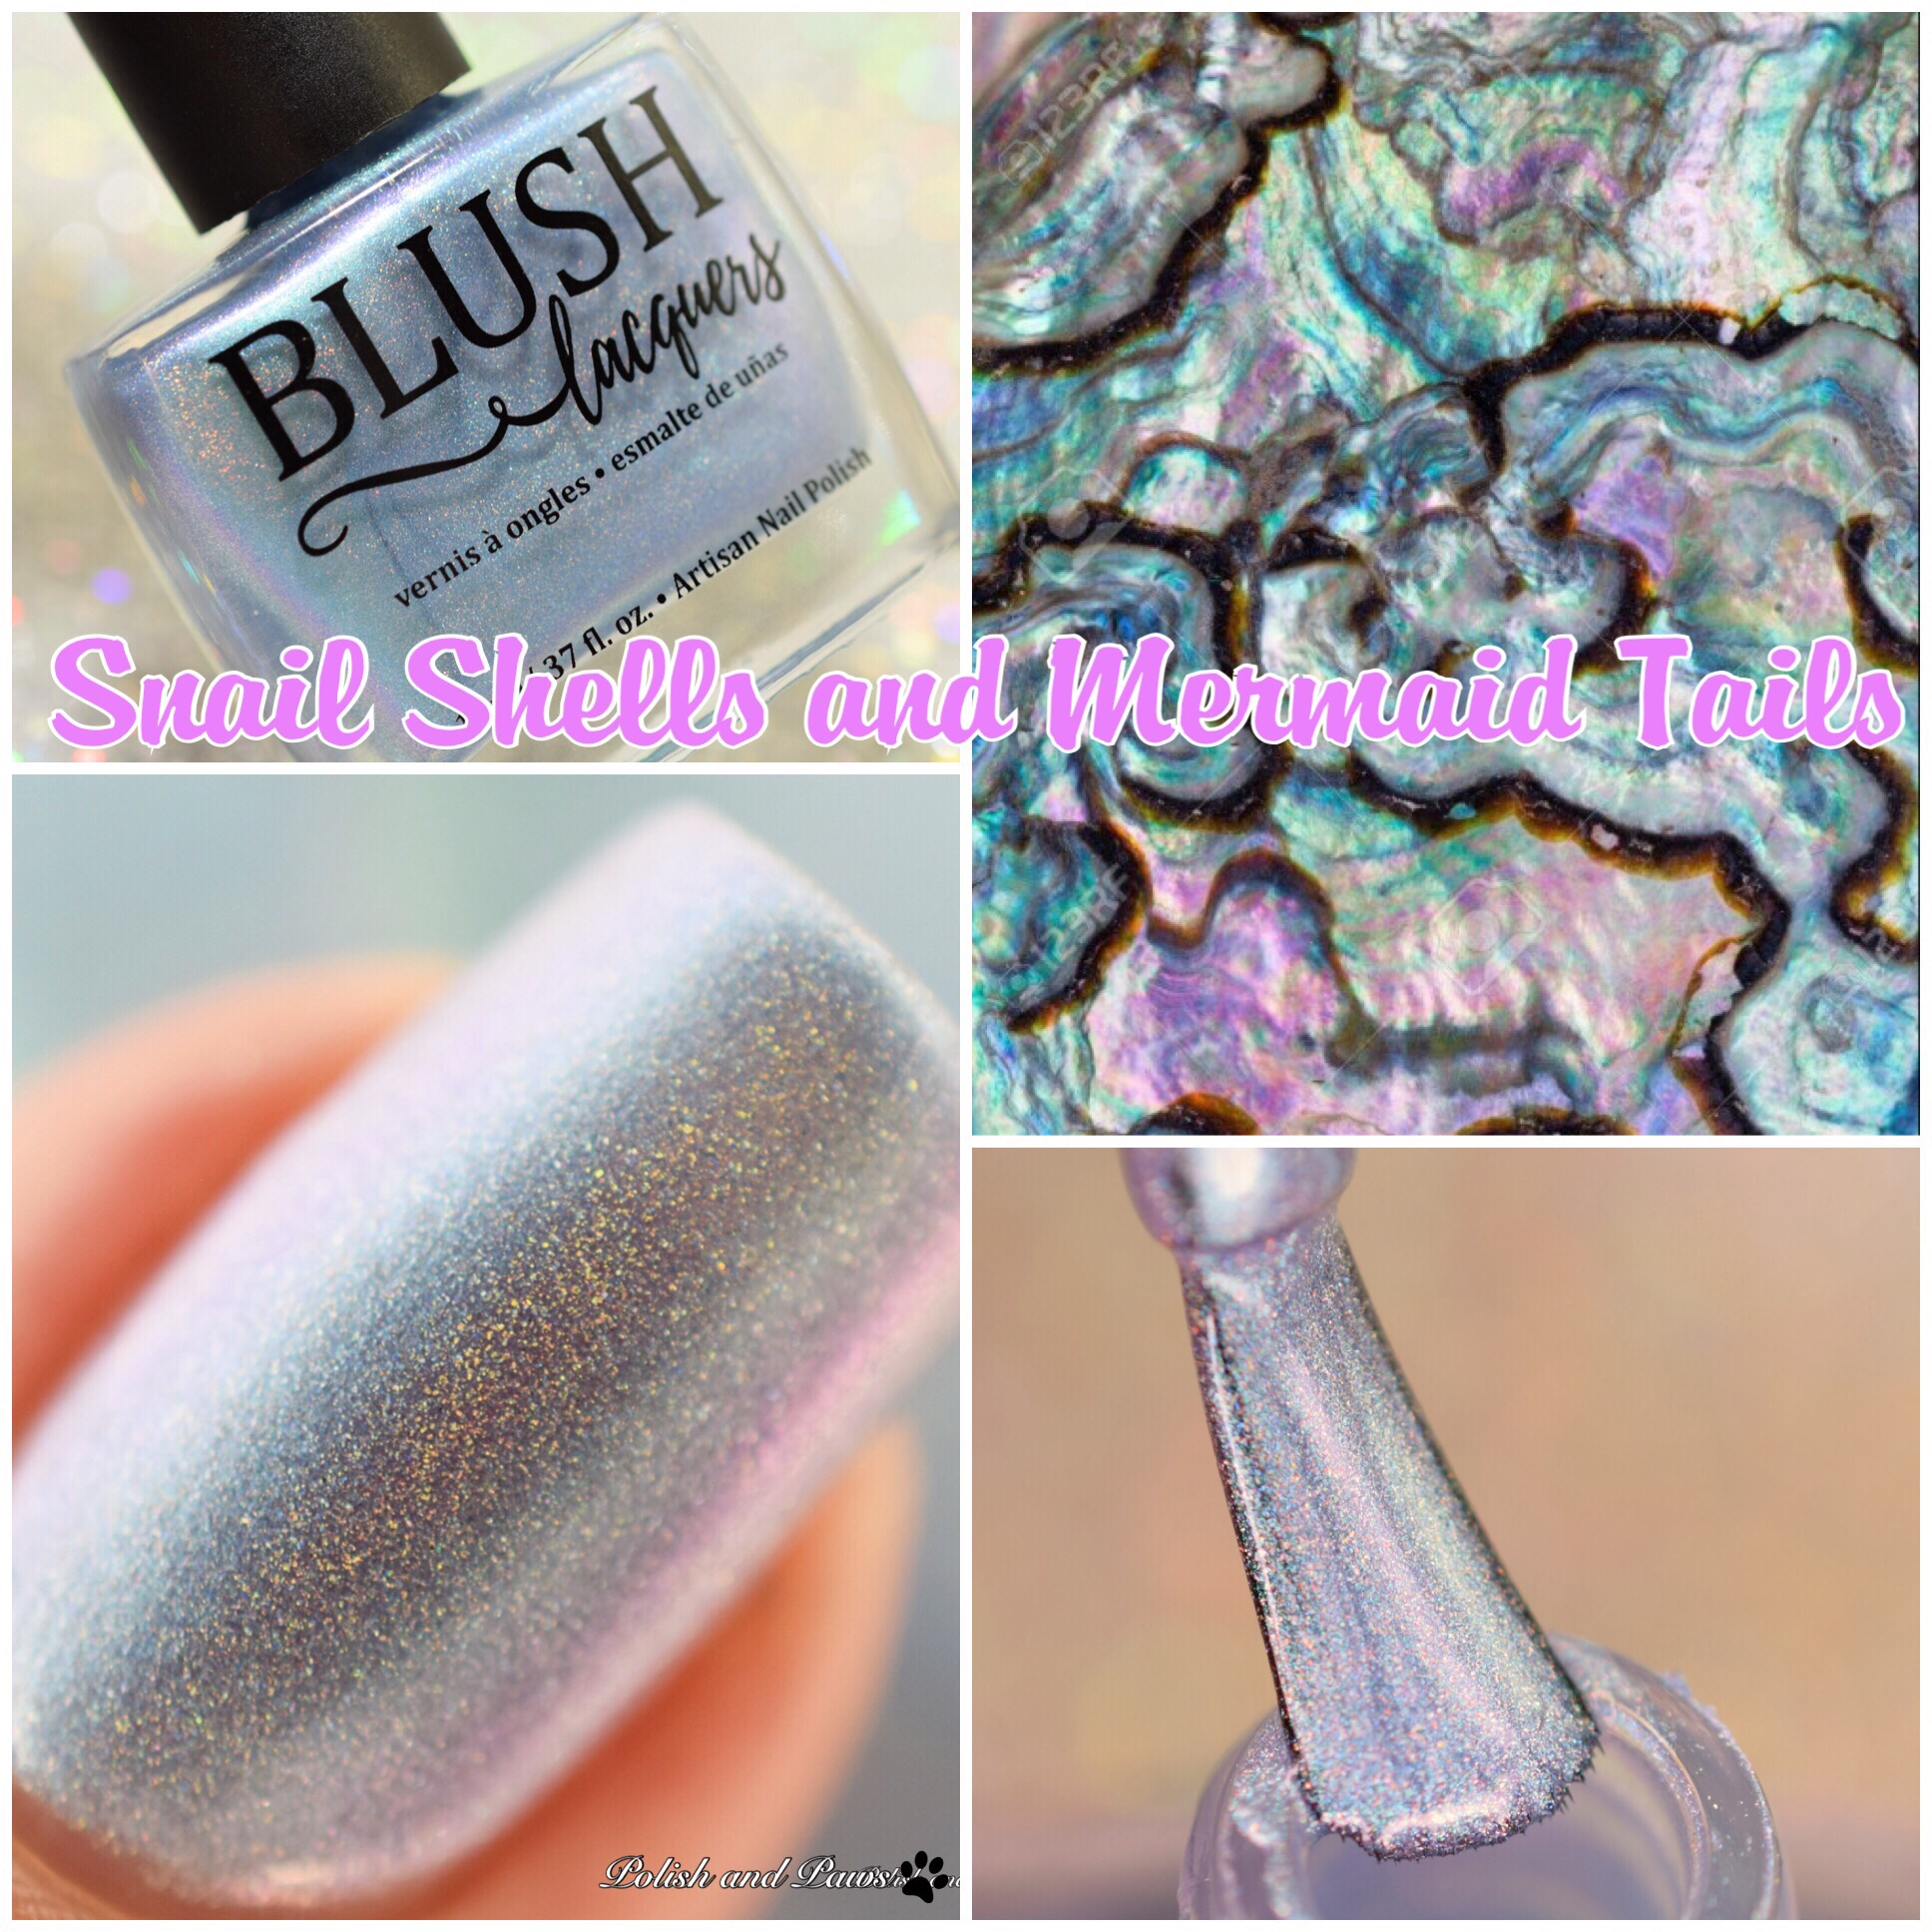 Blush Lacquers Snail Shells and Mermaid Tails